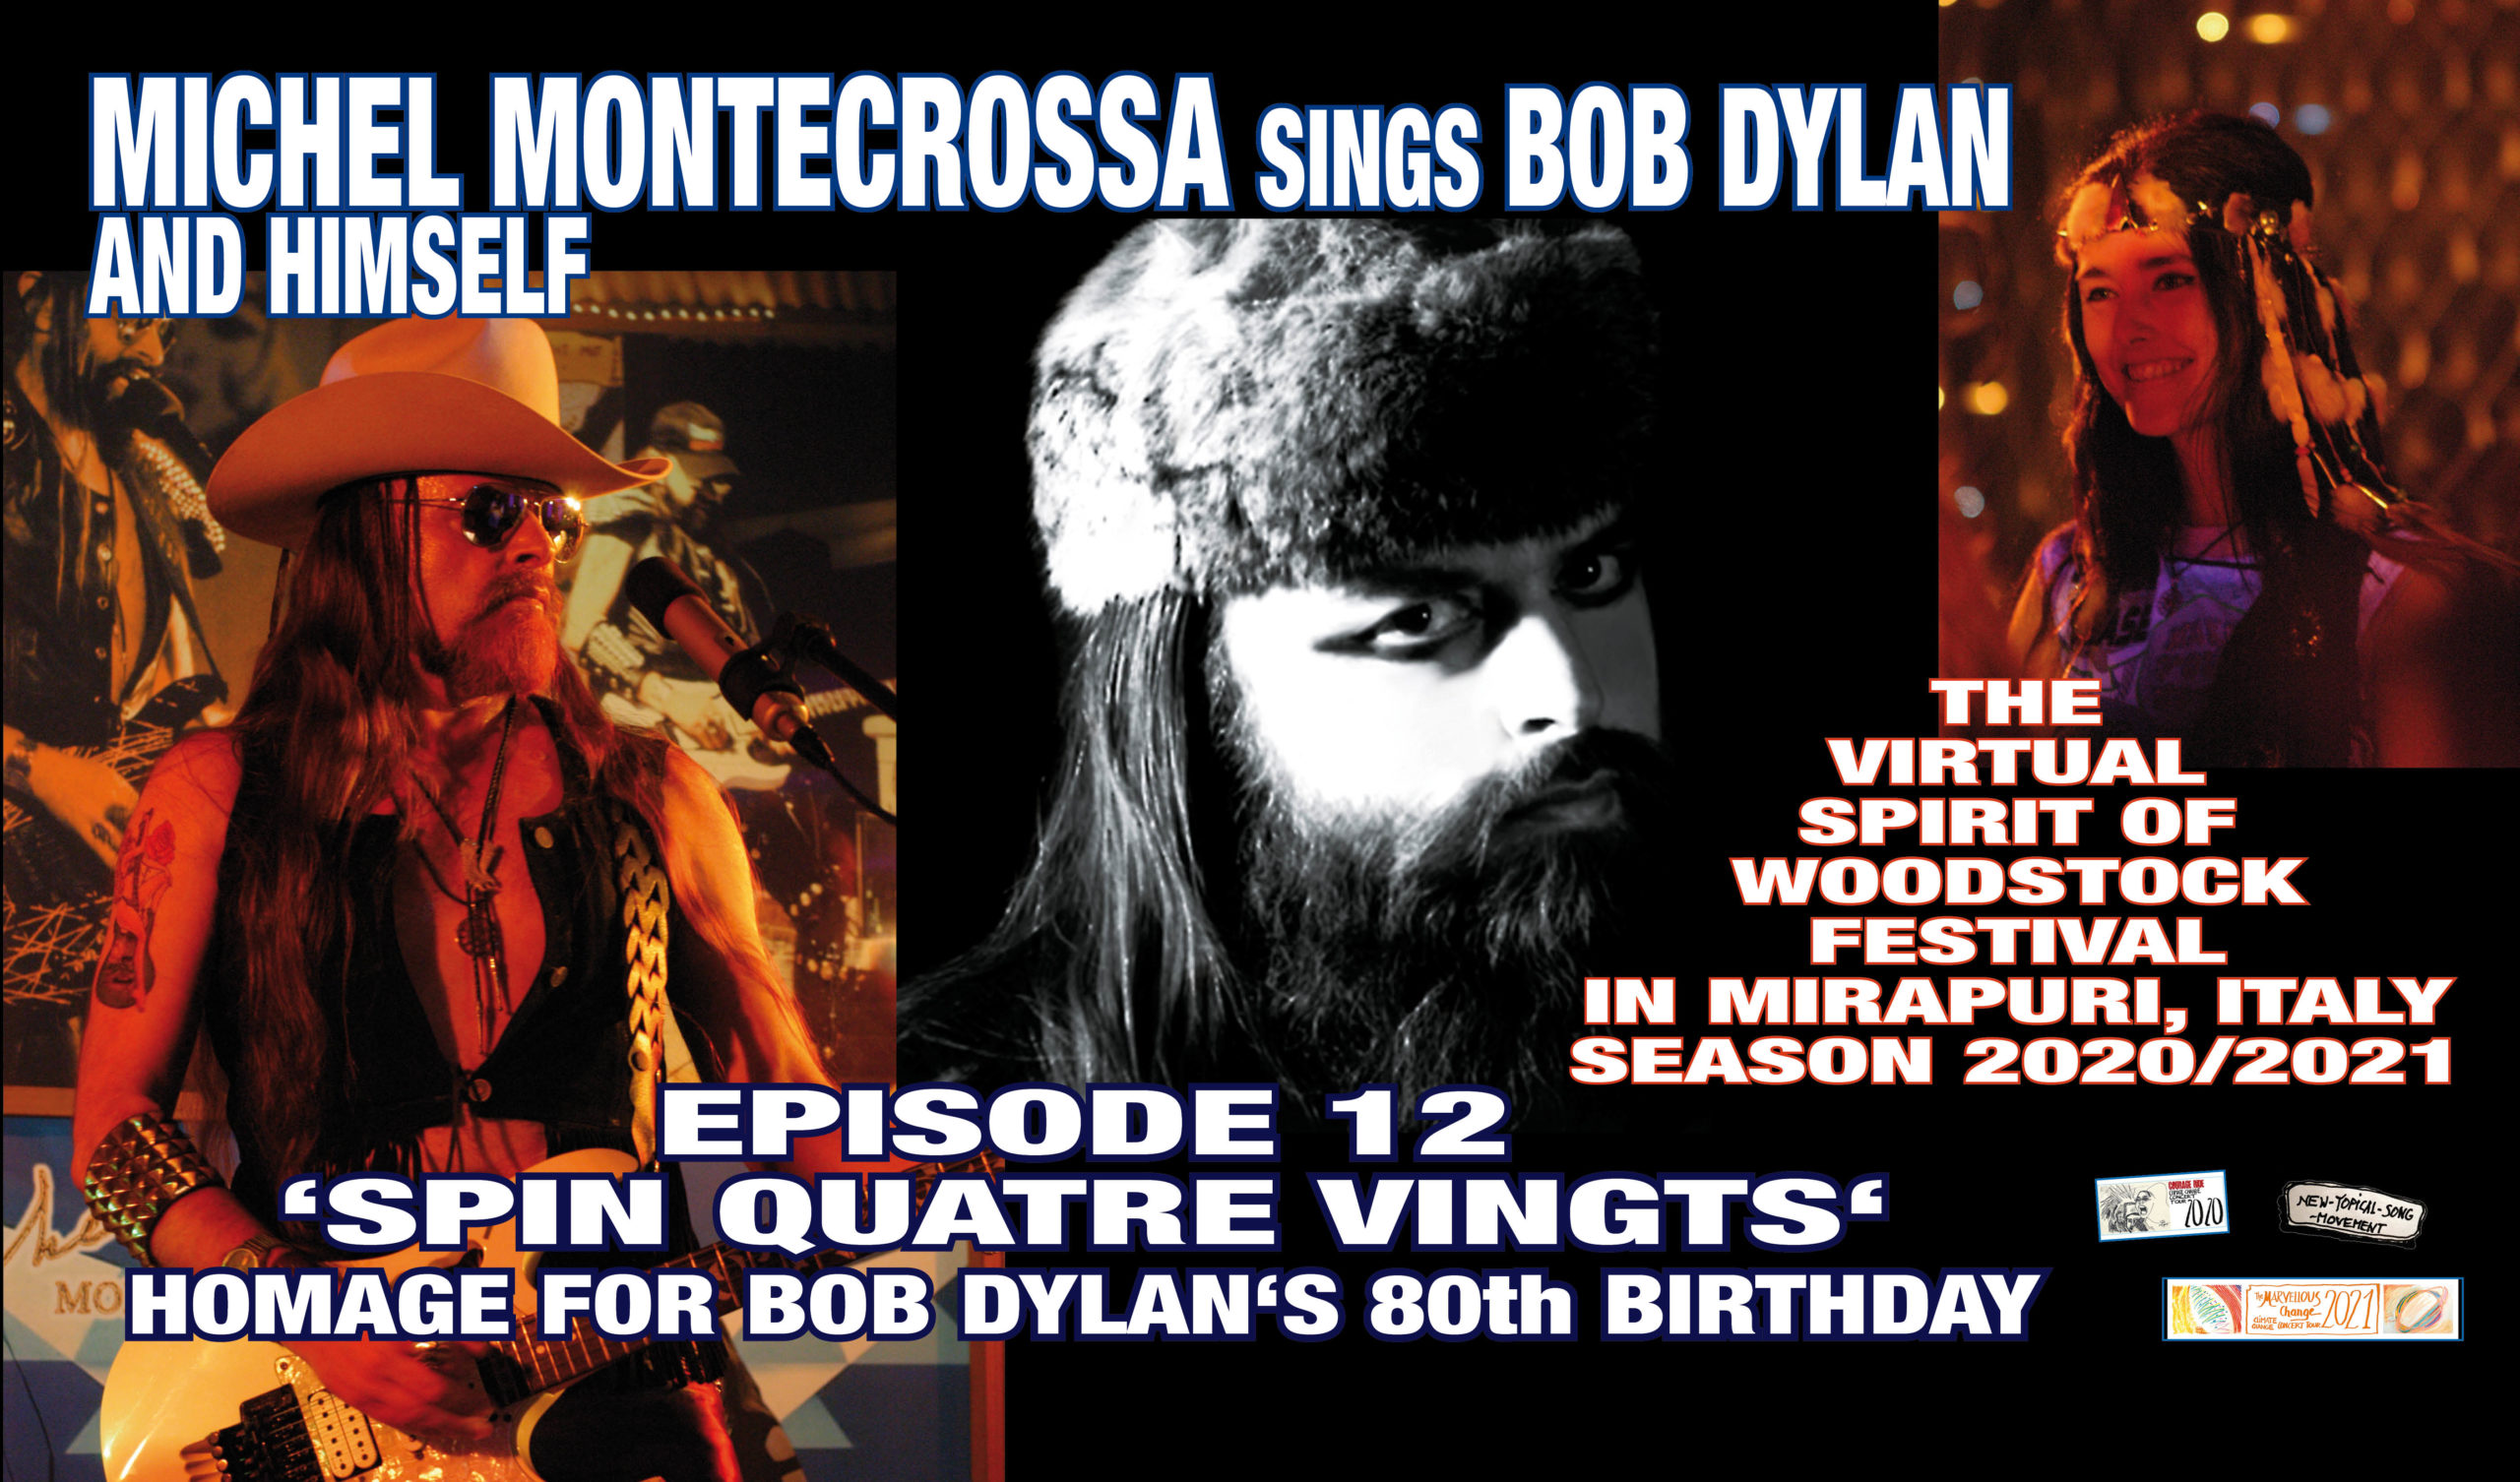 The Virtual Spirit of Woodstock Festival in Mirapuri, Italy Season 2020/2021 Episode 12 'Spin Quatre Vingts'